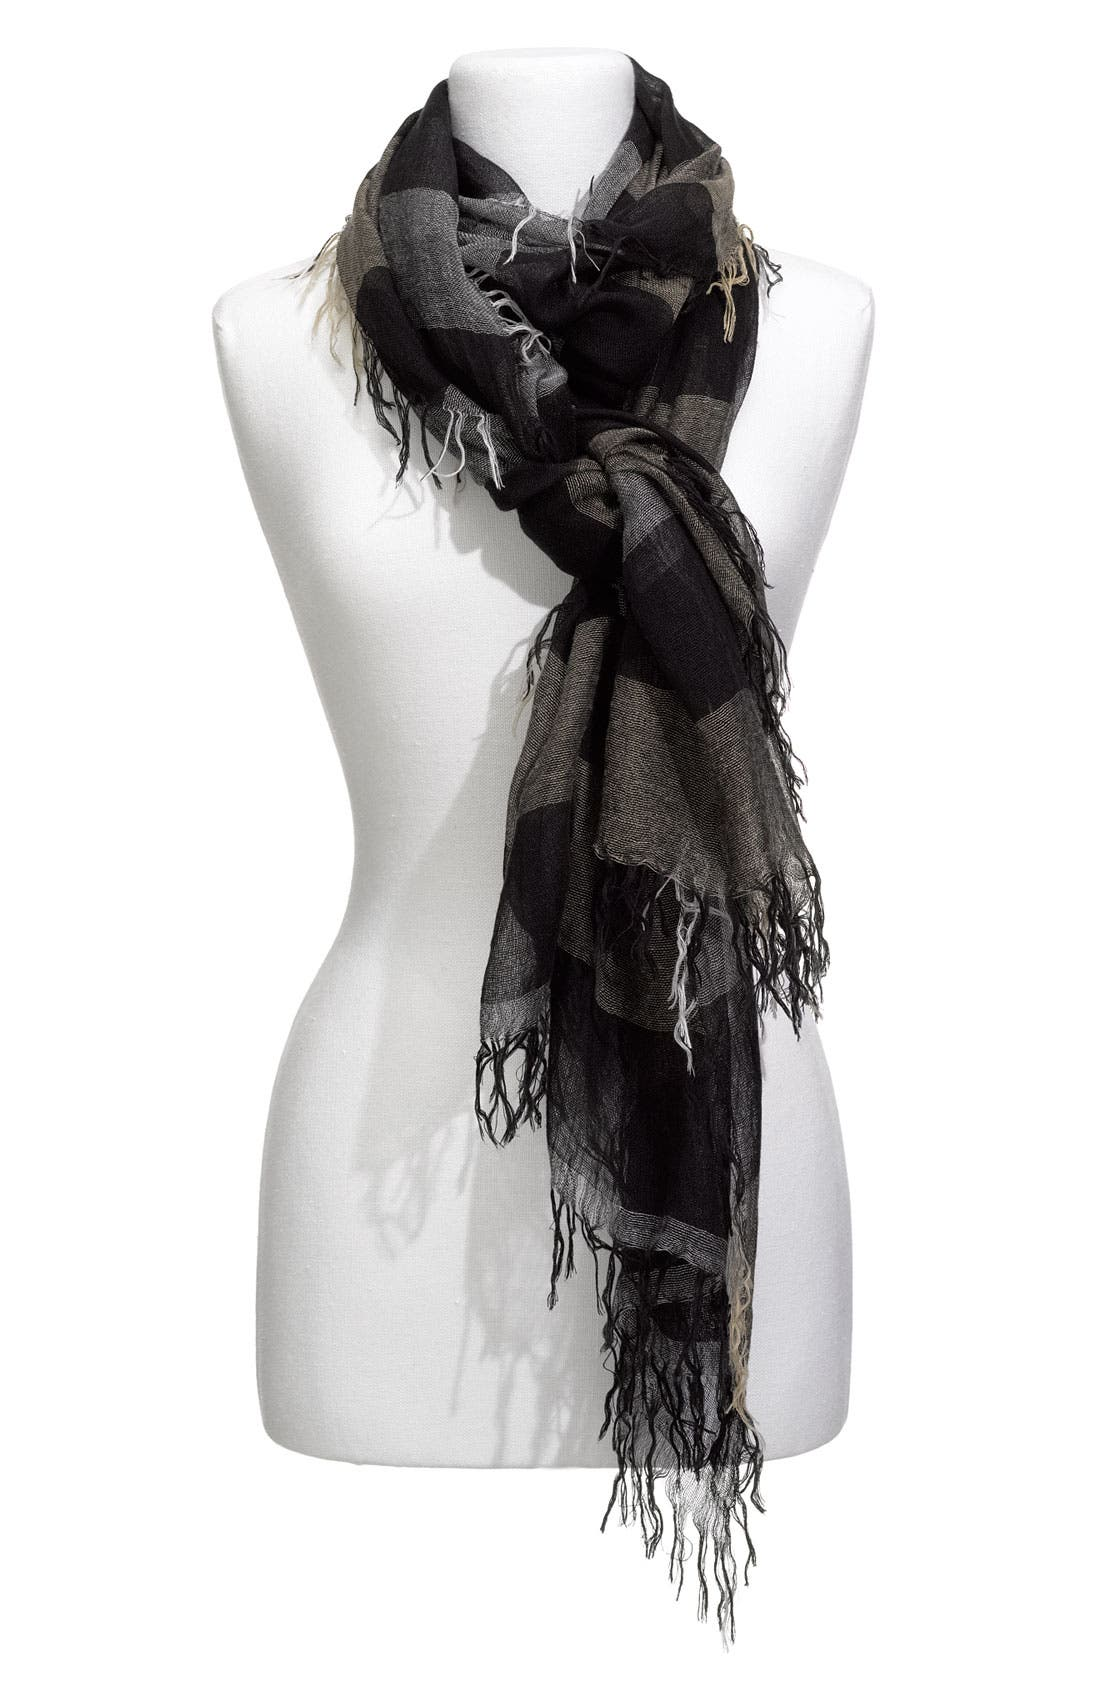 Alternate Image 1 Selected - Collection XIIX 'Marilyn' Oversized Strip Scarf